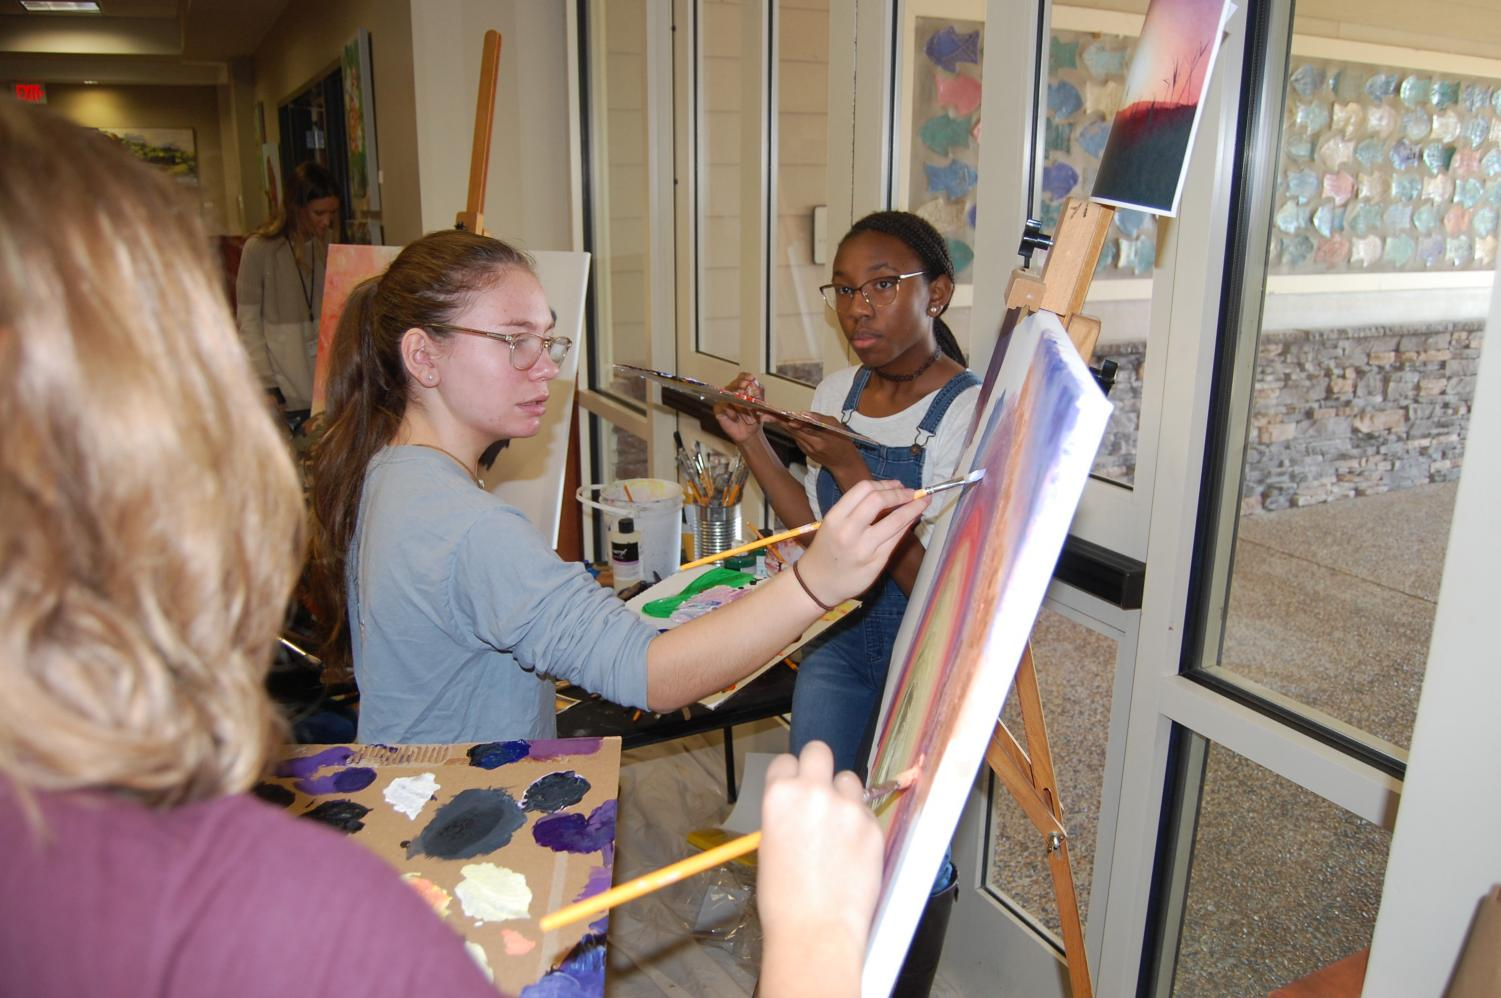 Sophomore Caroline Higley works with her group to paint a sunset at the Art Show on Nov 7. Two groups of students formed to work on the live art painting.